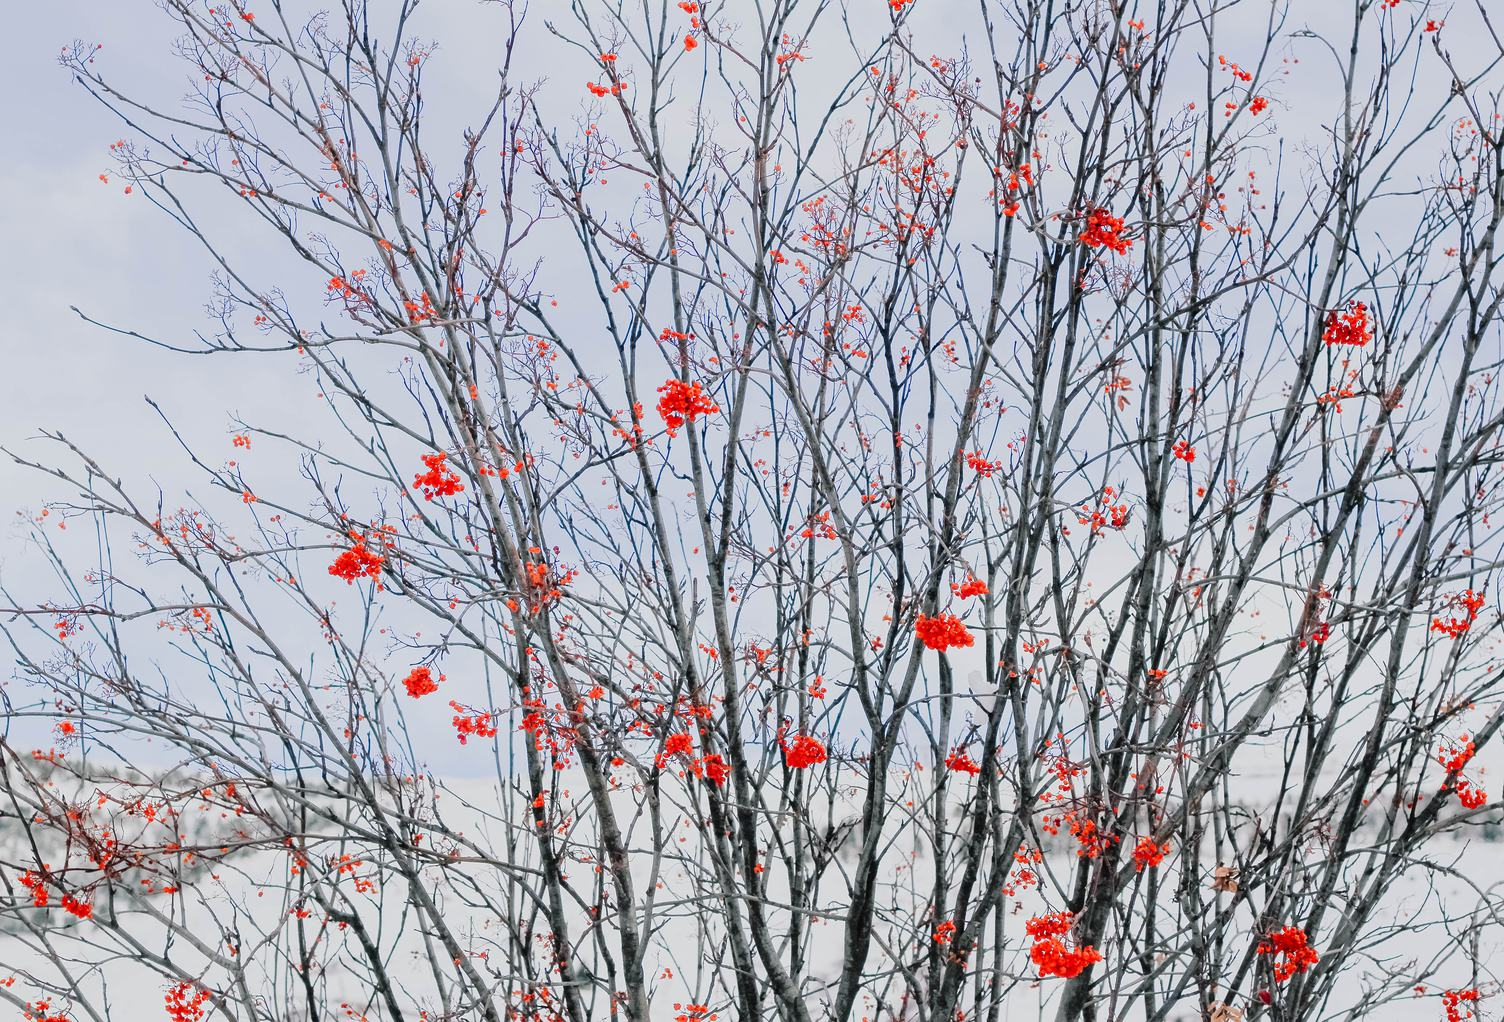 Sorbus Tree in the Winter Time